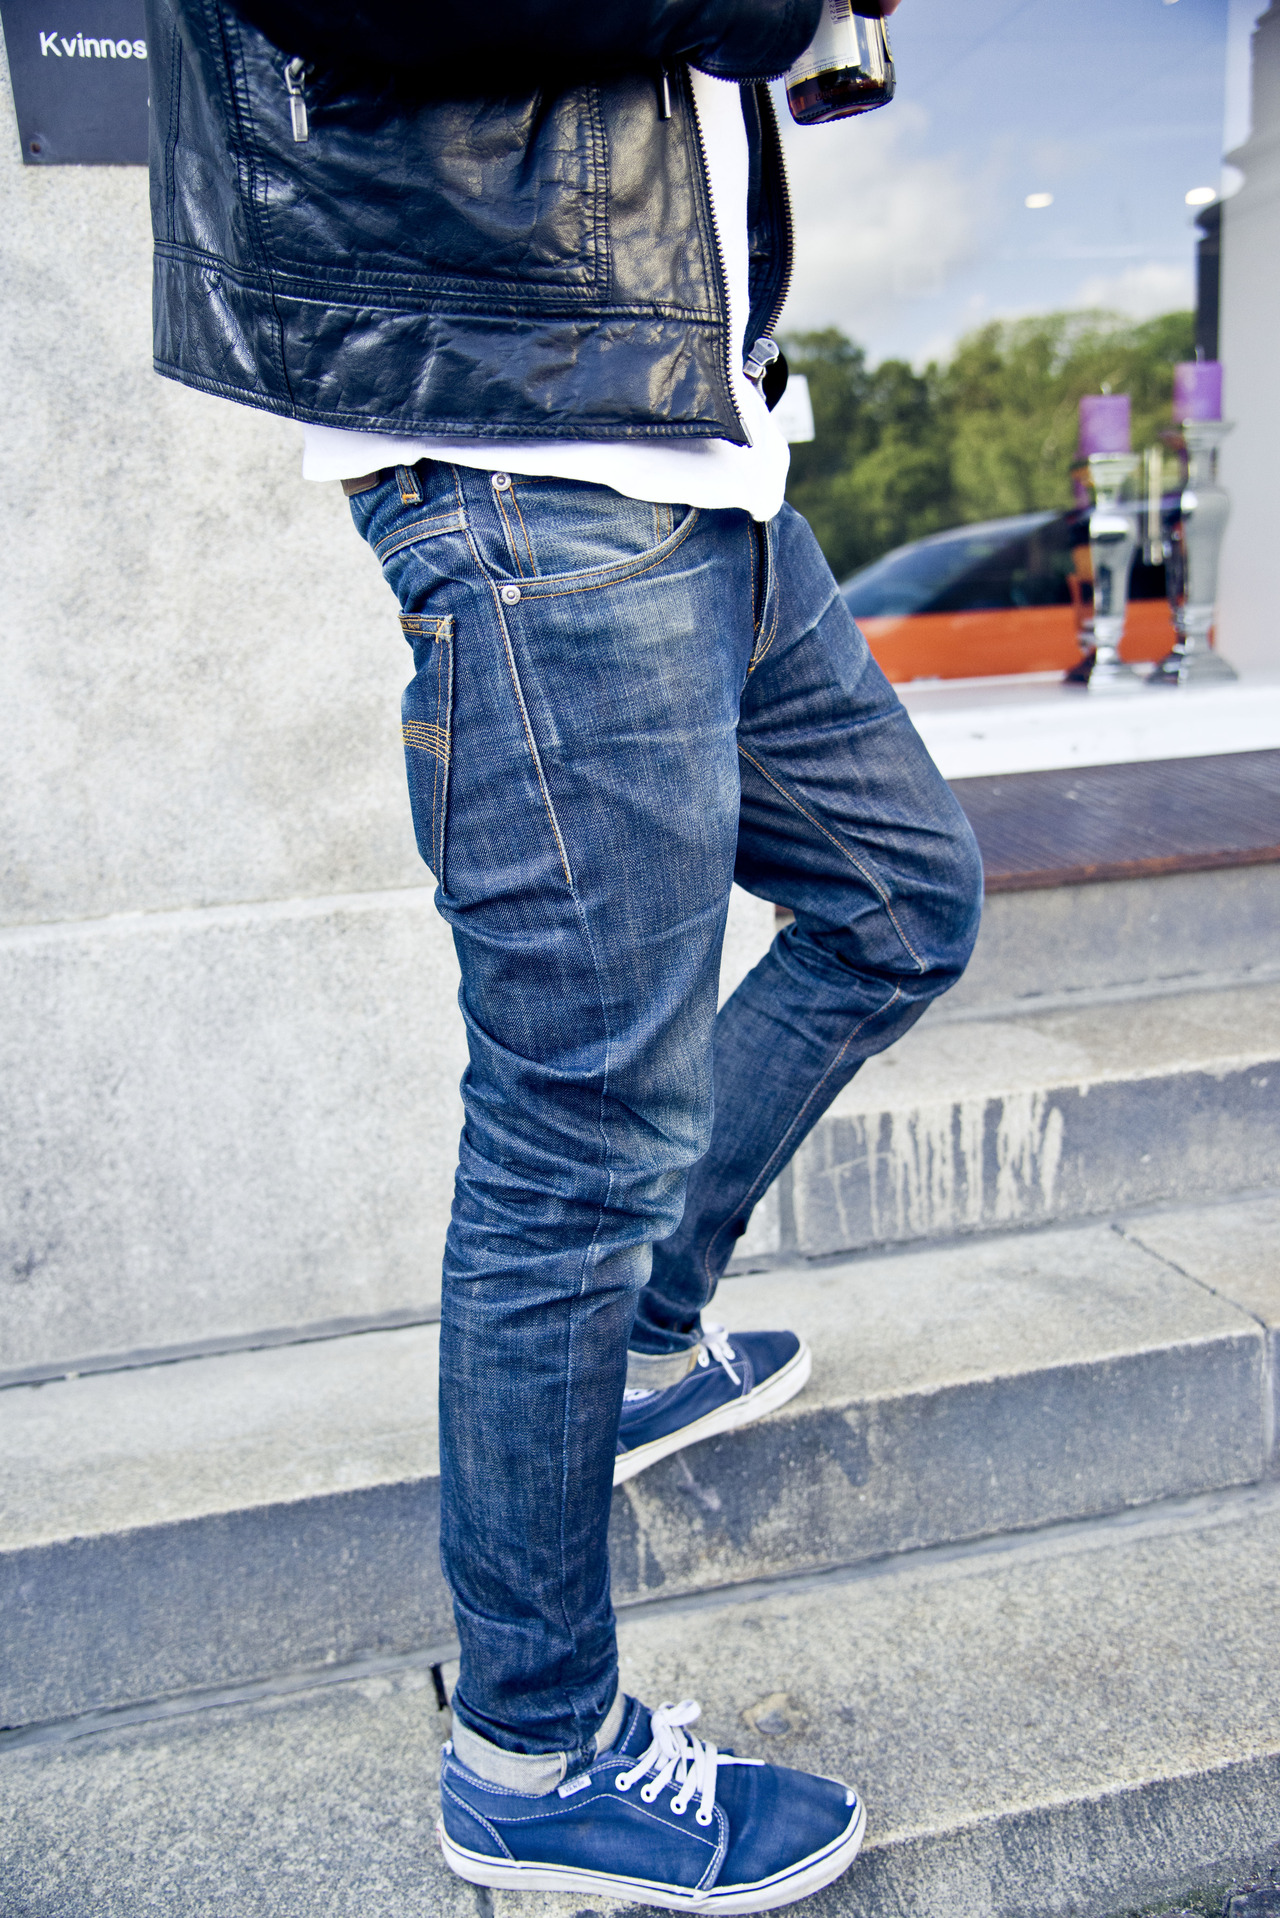 Boys In Jeans Tumblr Sales manager nudie jeans